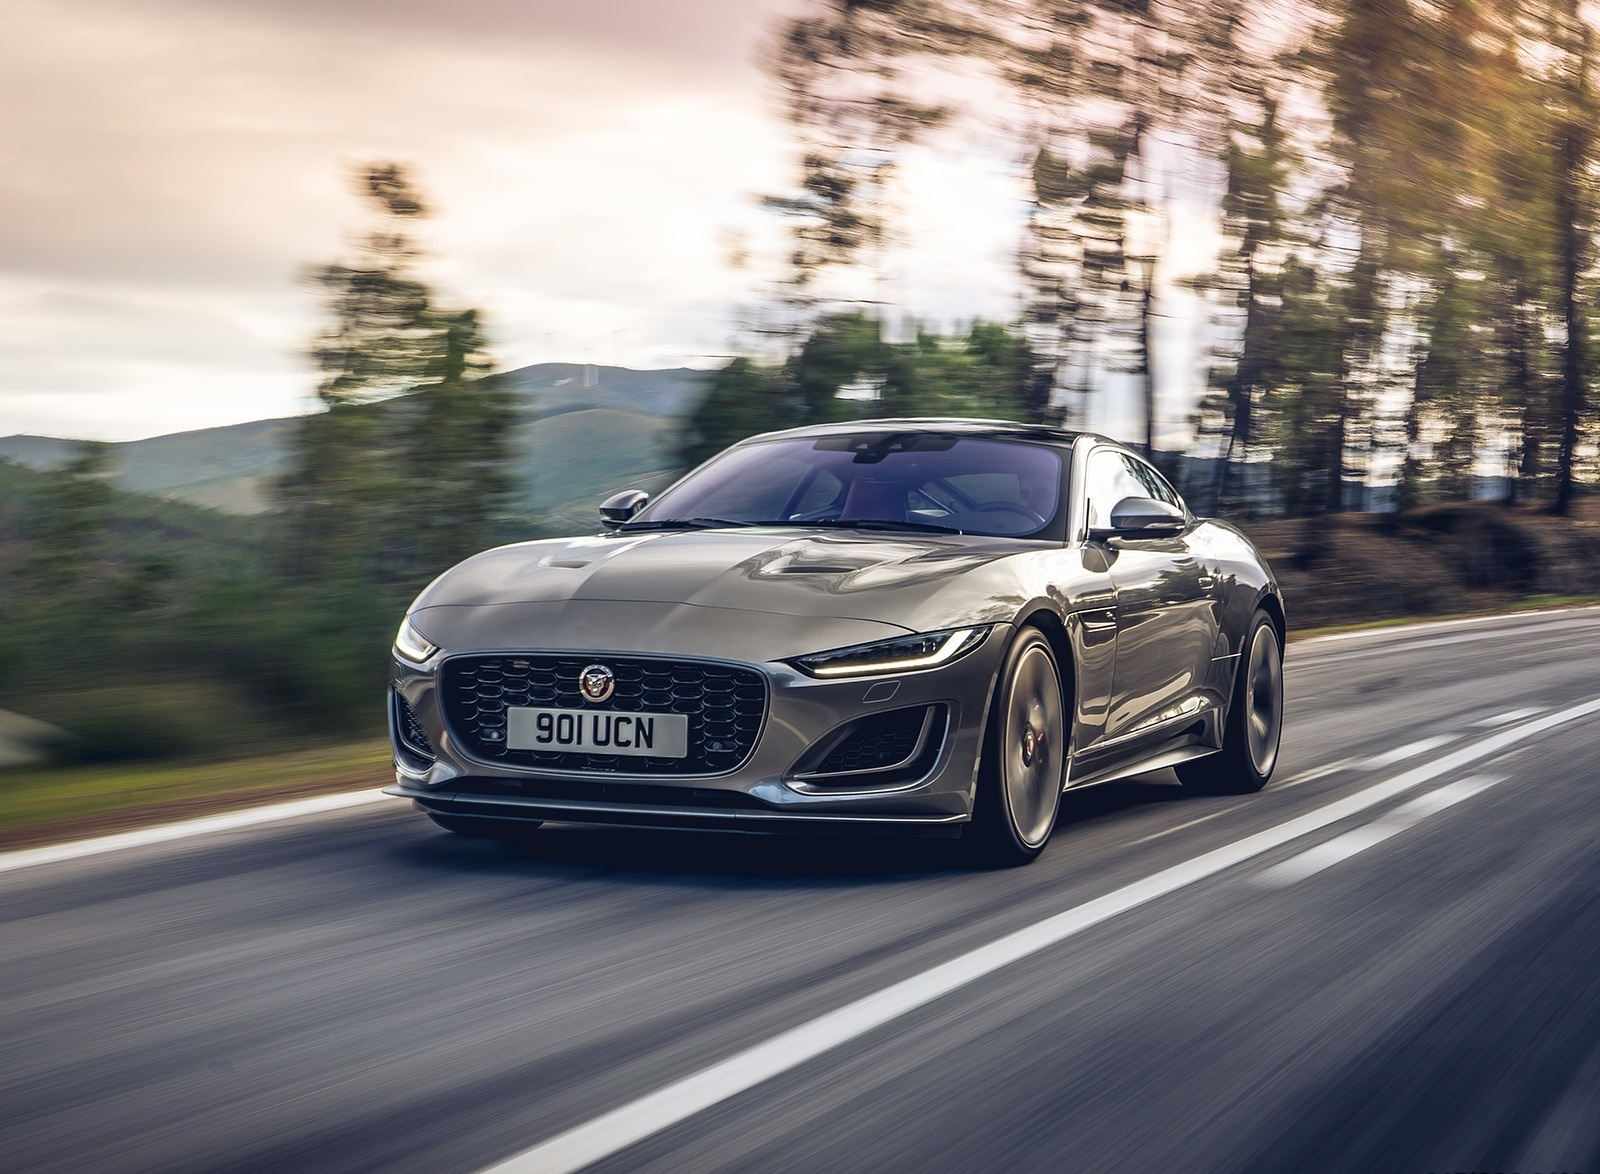 2021 Jaguar F-TYPE P300 Coupe RWD (Color: Eiger Grey) Front Three-Quarter Wallpapers (2)